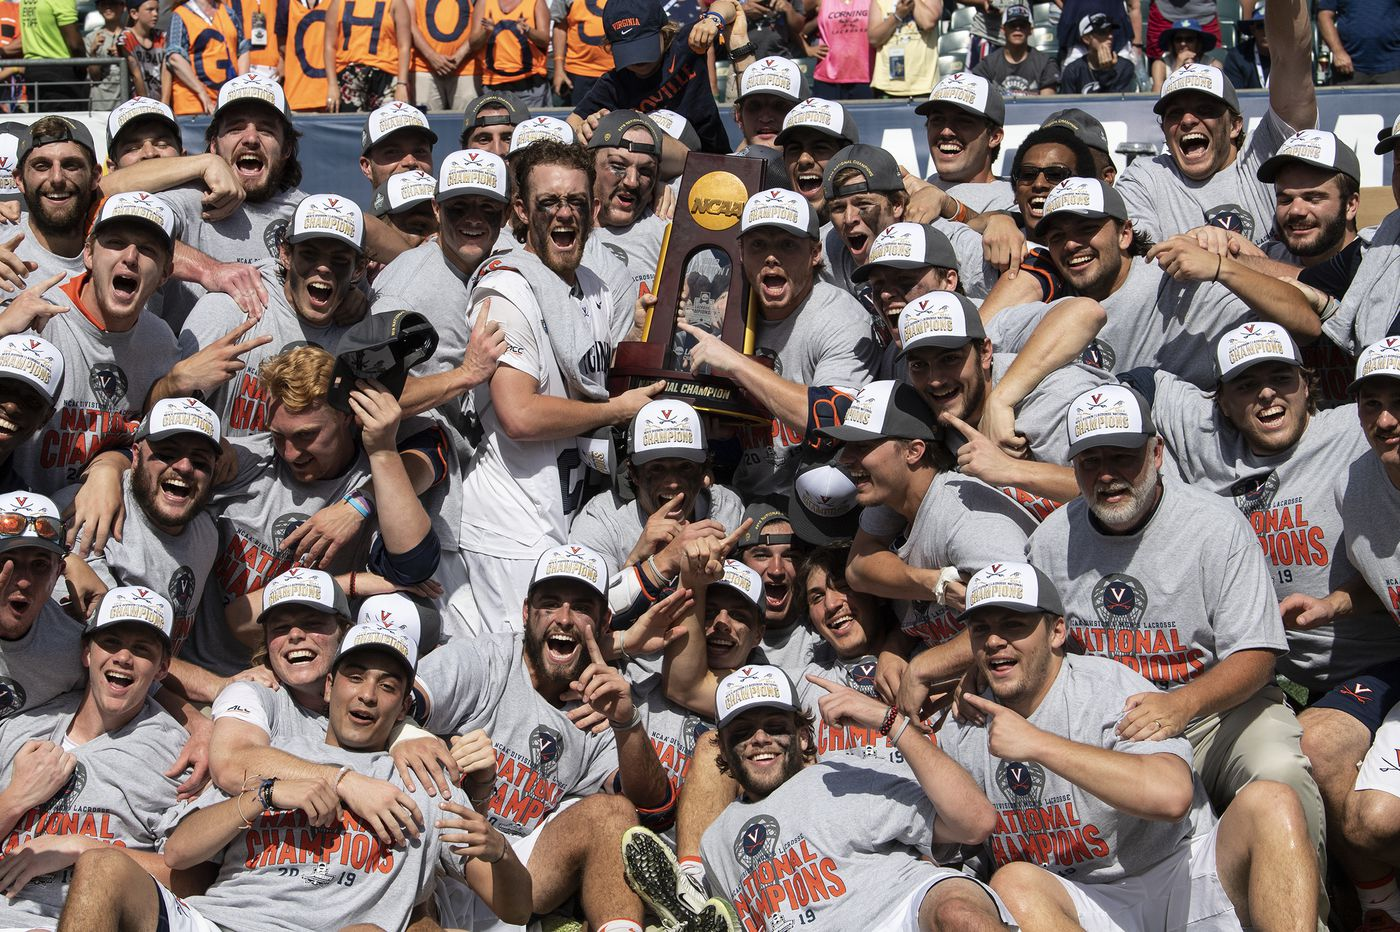 Game time, broadcast info for UVA-Yale lacrosse national championship game